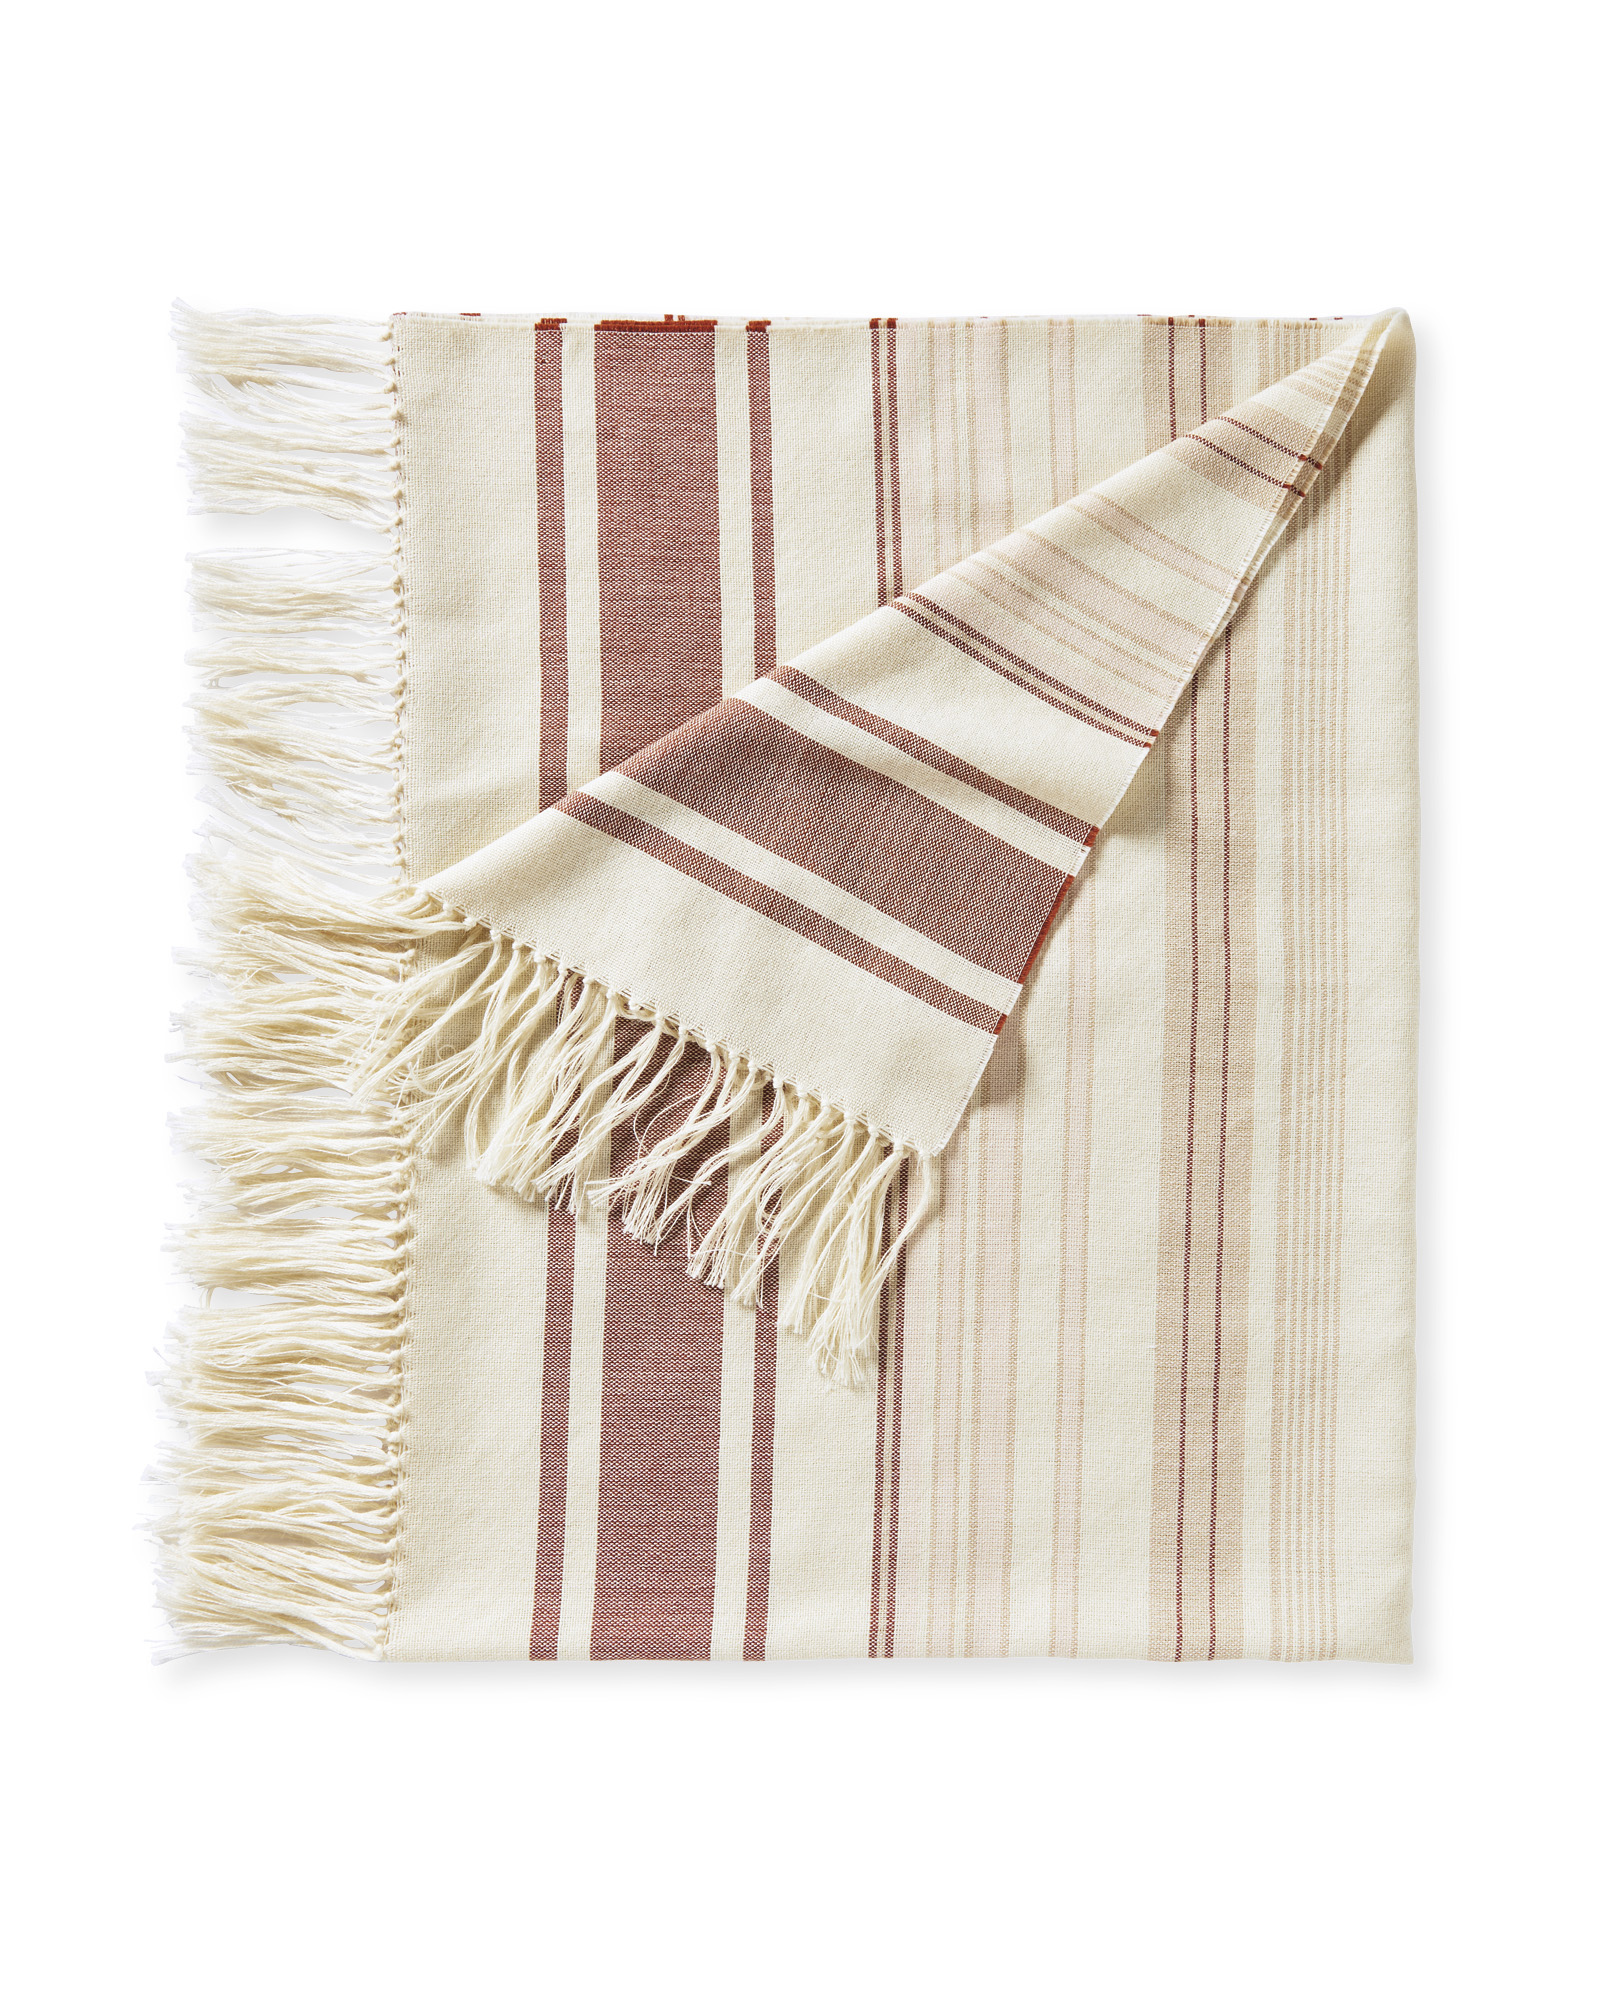 Ambleside Alpaca Throw, Wild Rose/Terracotta